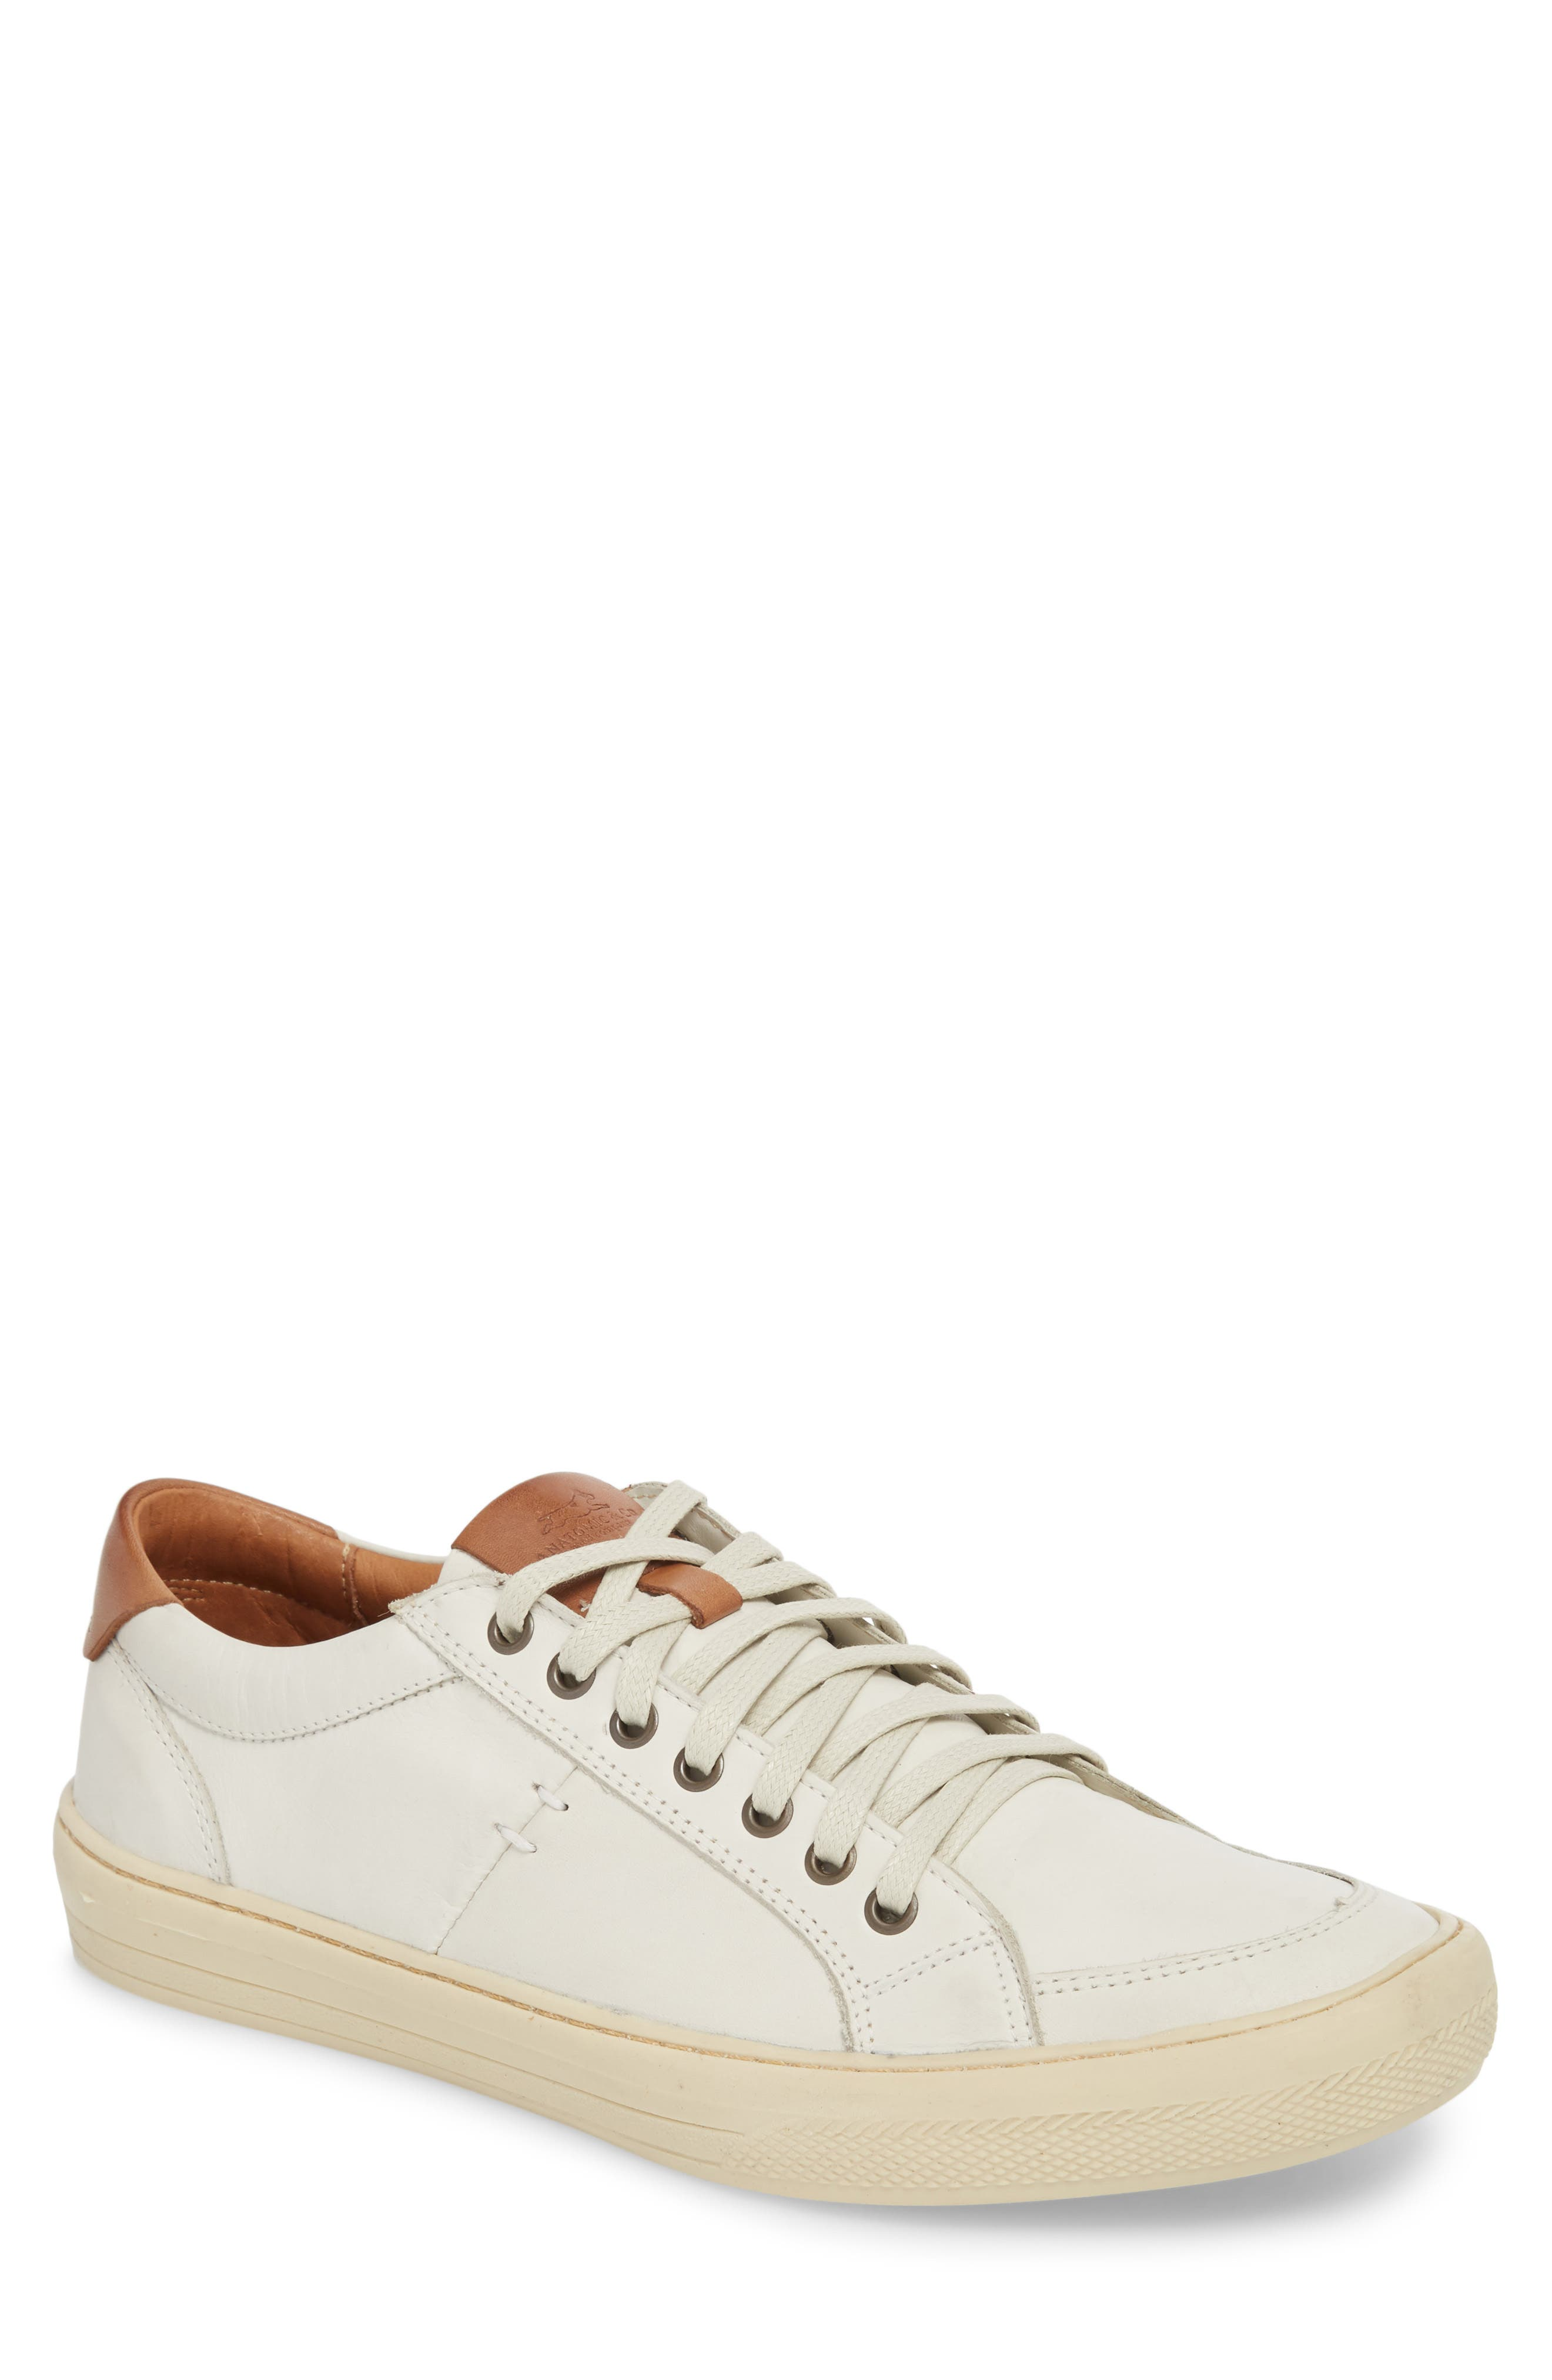 Bilac Low Top Sneaker,                             Main thumbnail 1, color,                             Touch Ice/ Bronze Leather